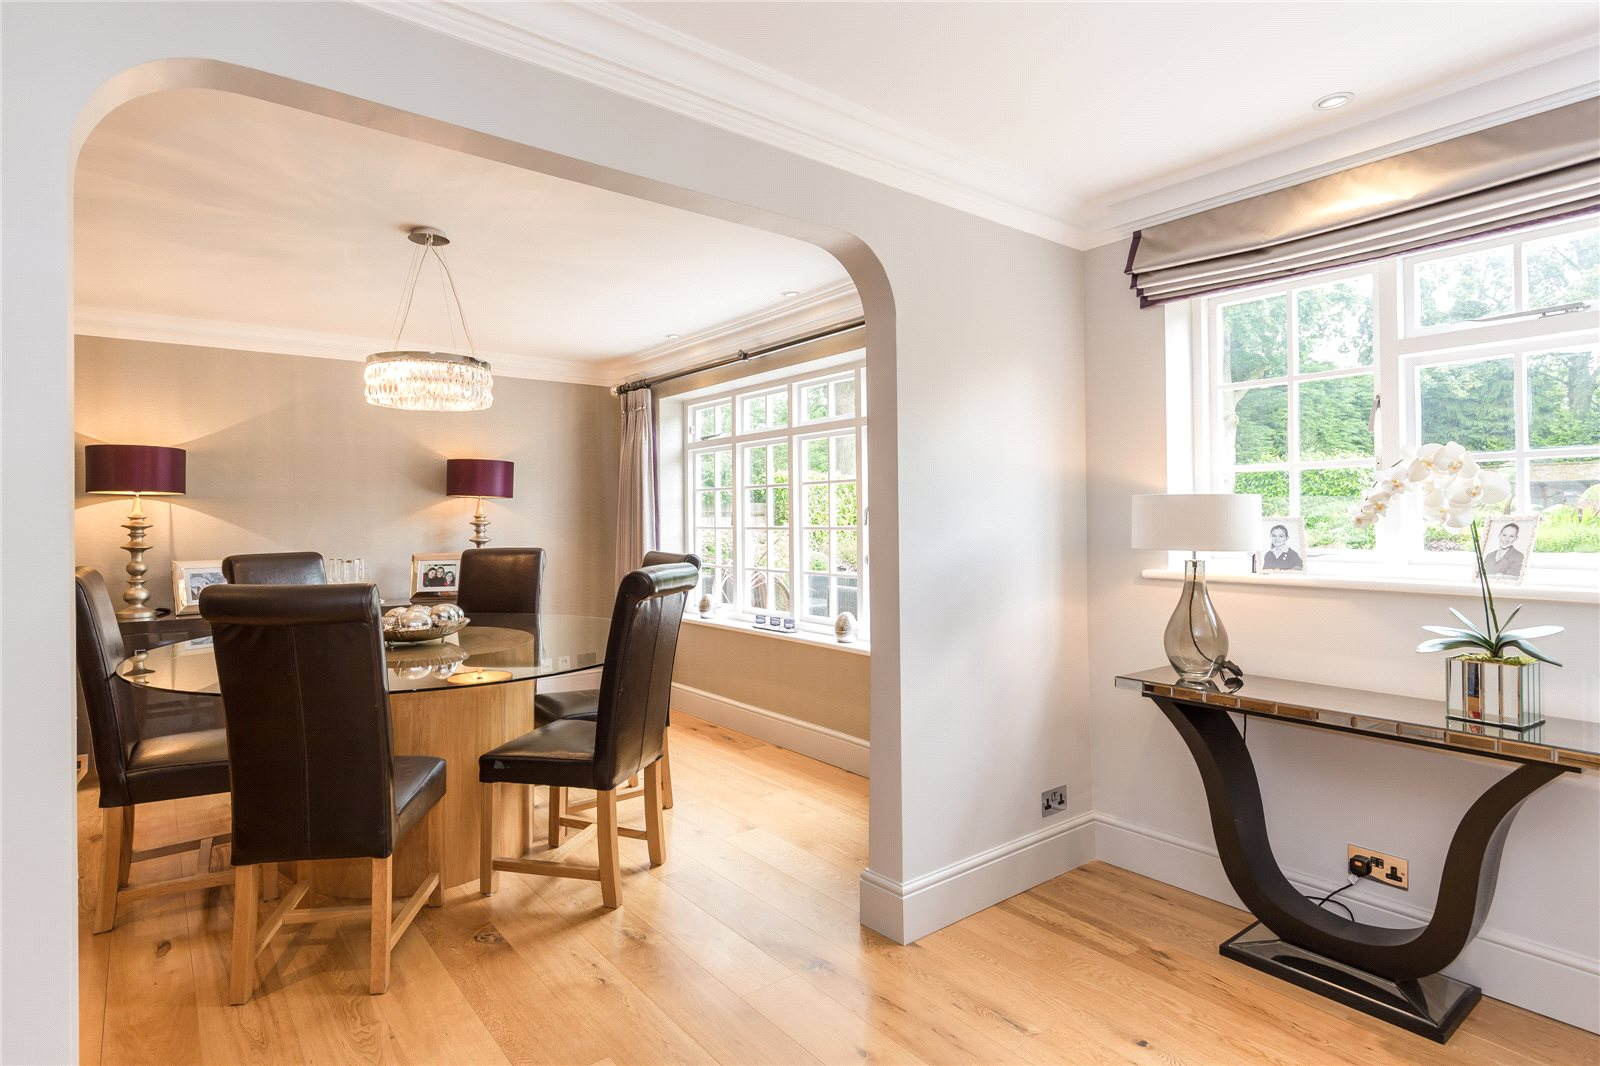 Additional photo for property listing at Dukes Wood Drive, Gerrards Cross, Buckinghamshire, SL9 Gerrards Cross, Αγγλια